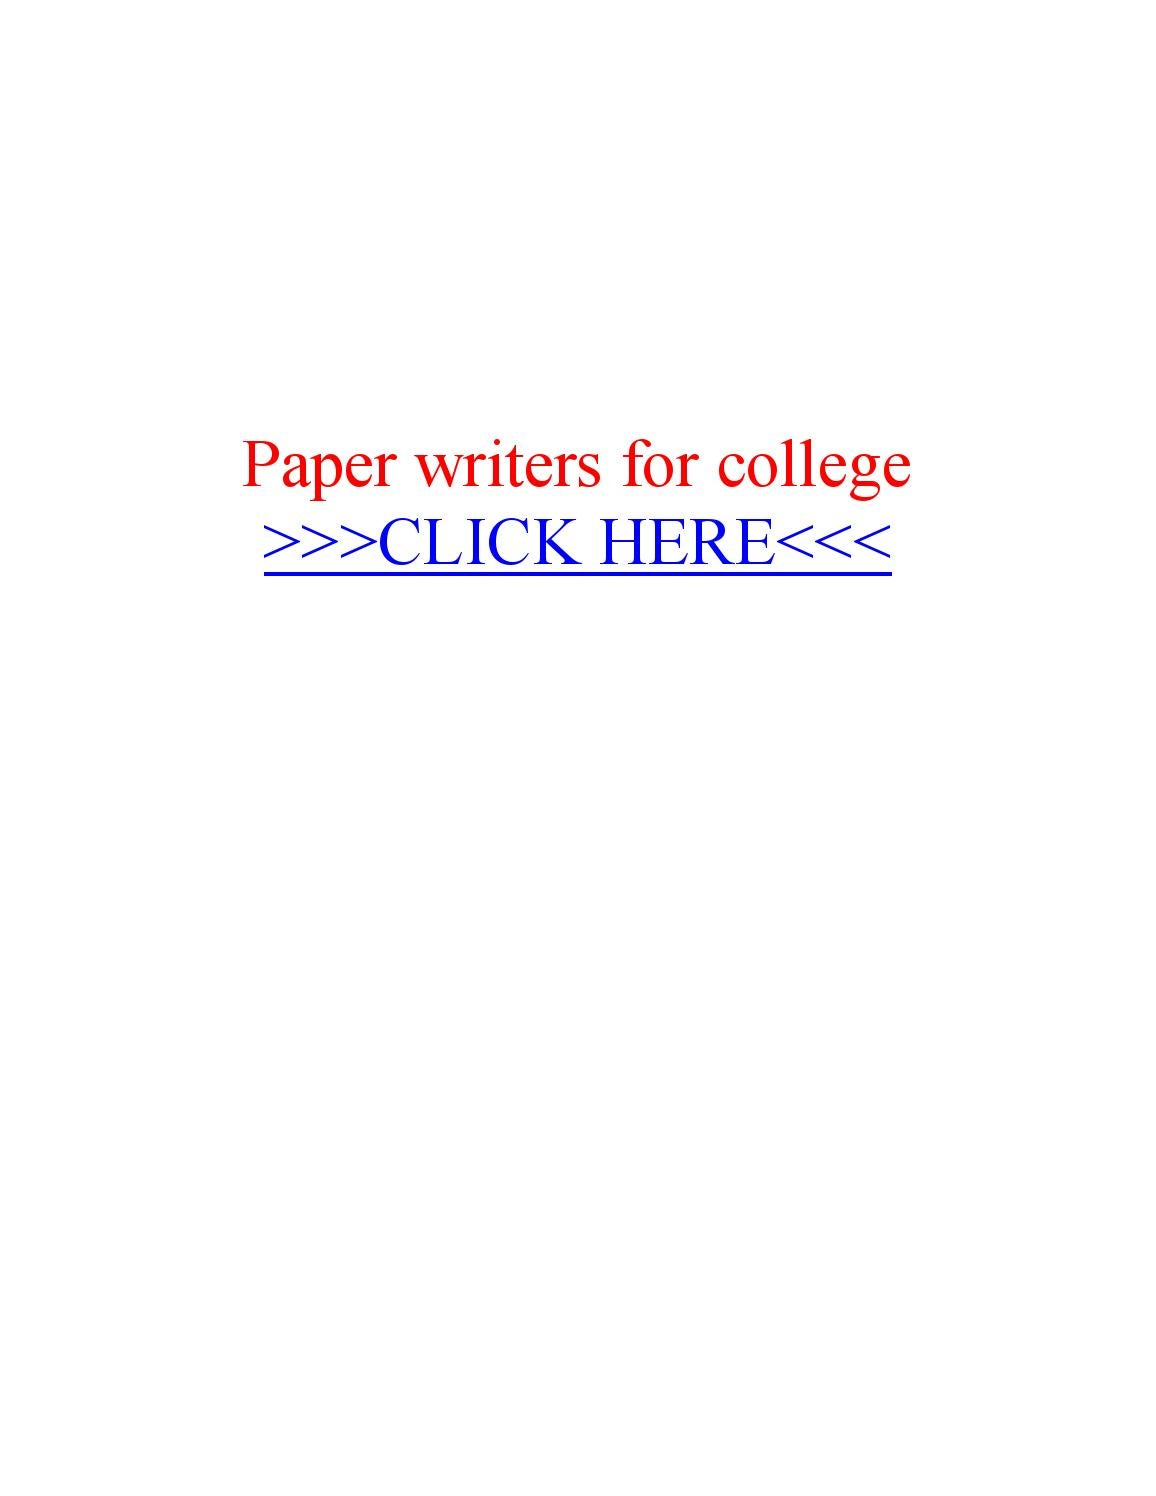 Help writing papers for college by essay writer service